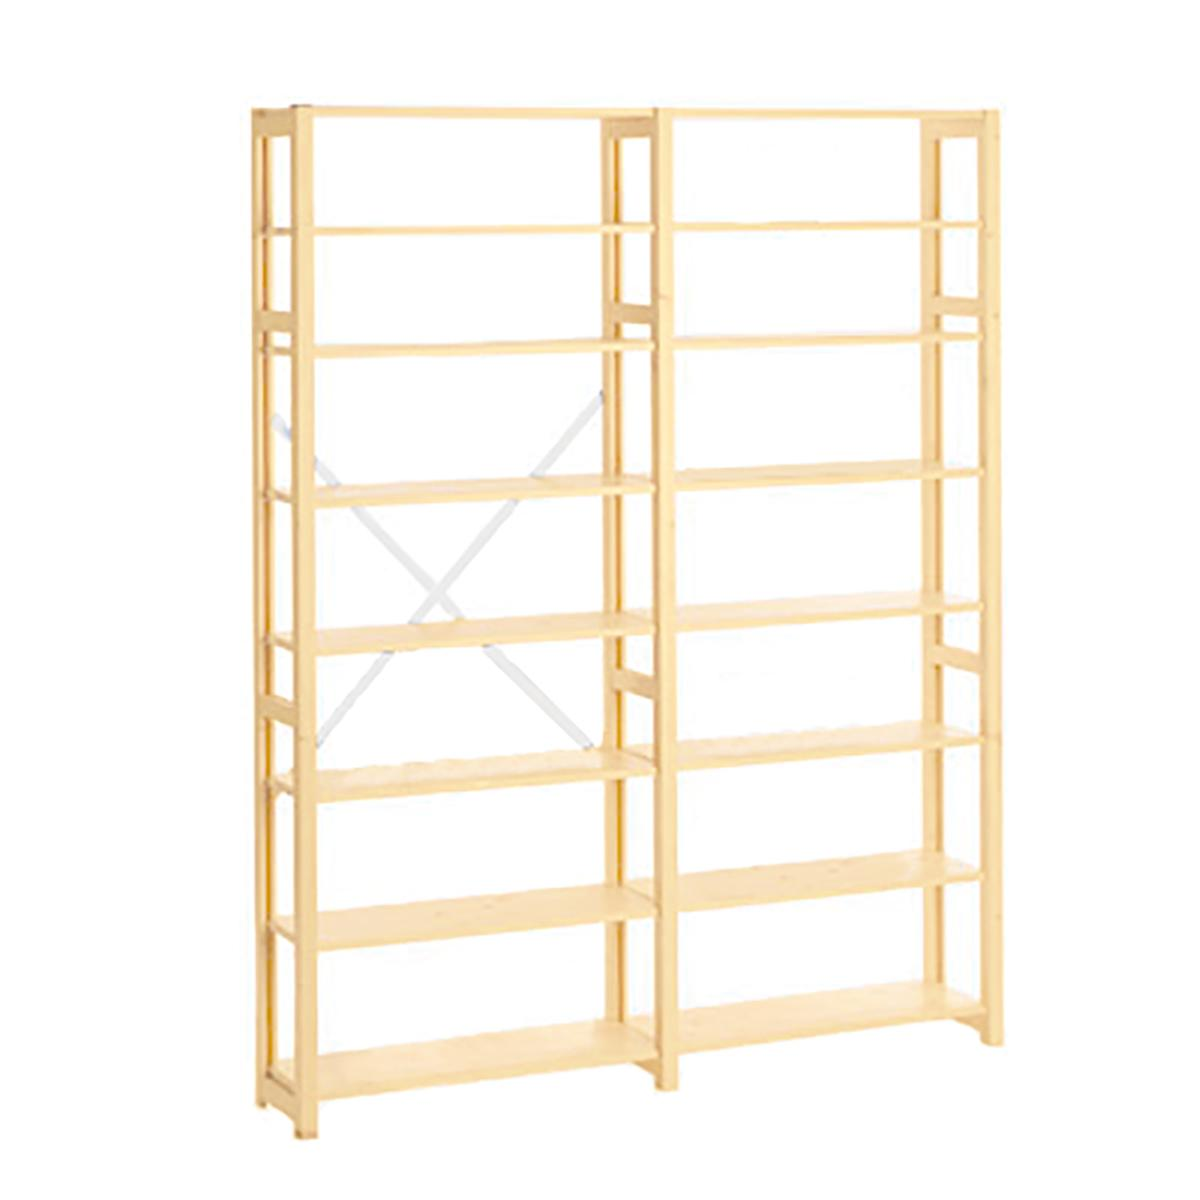 Skandia Simple Shelving